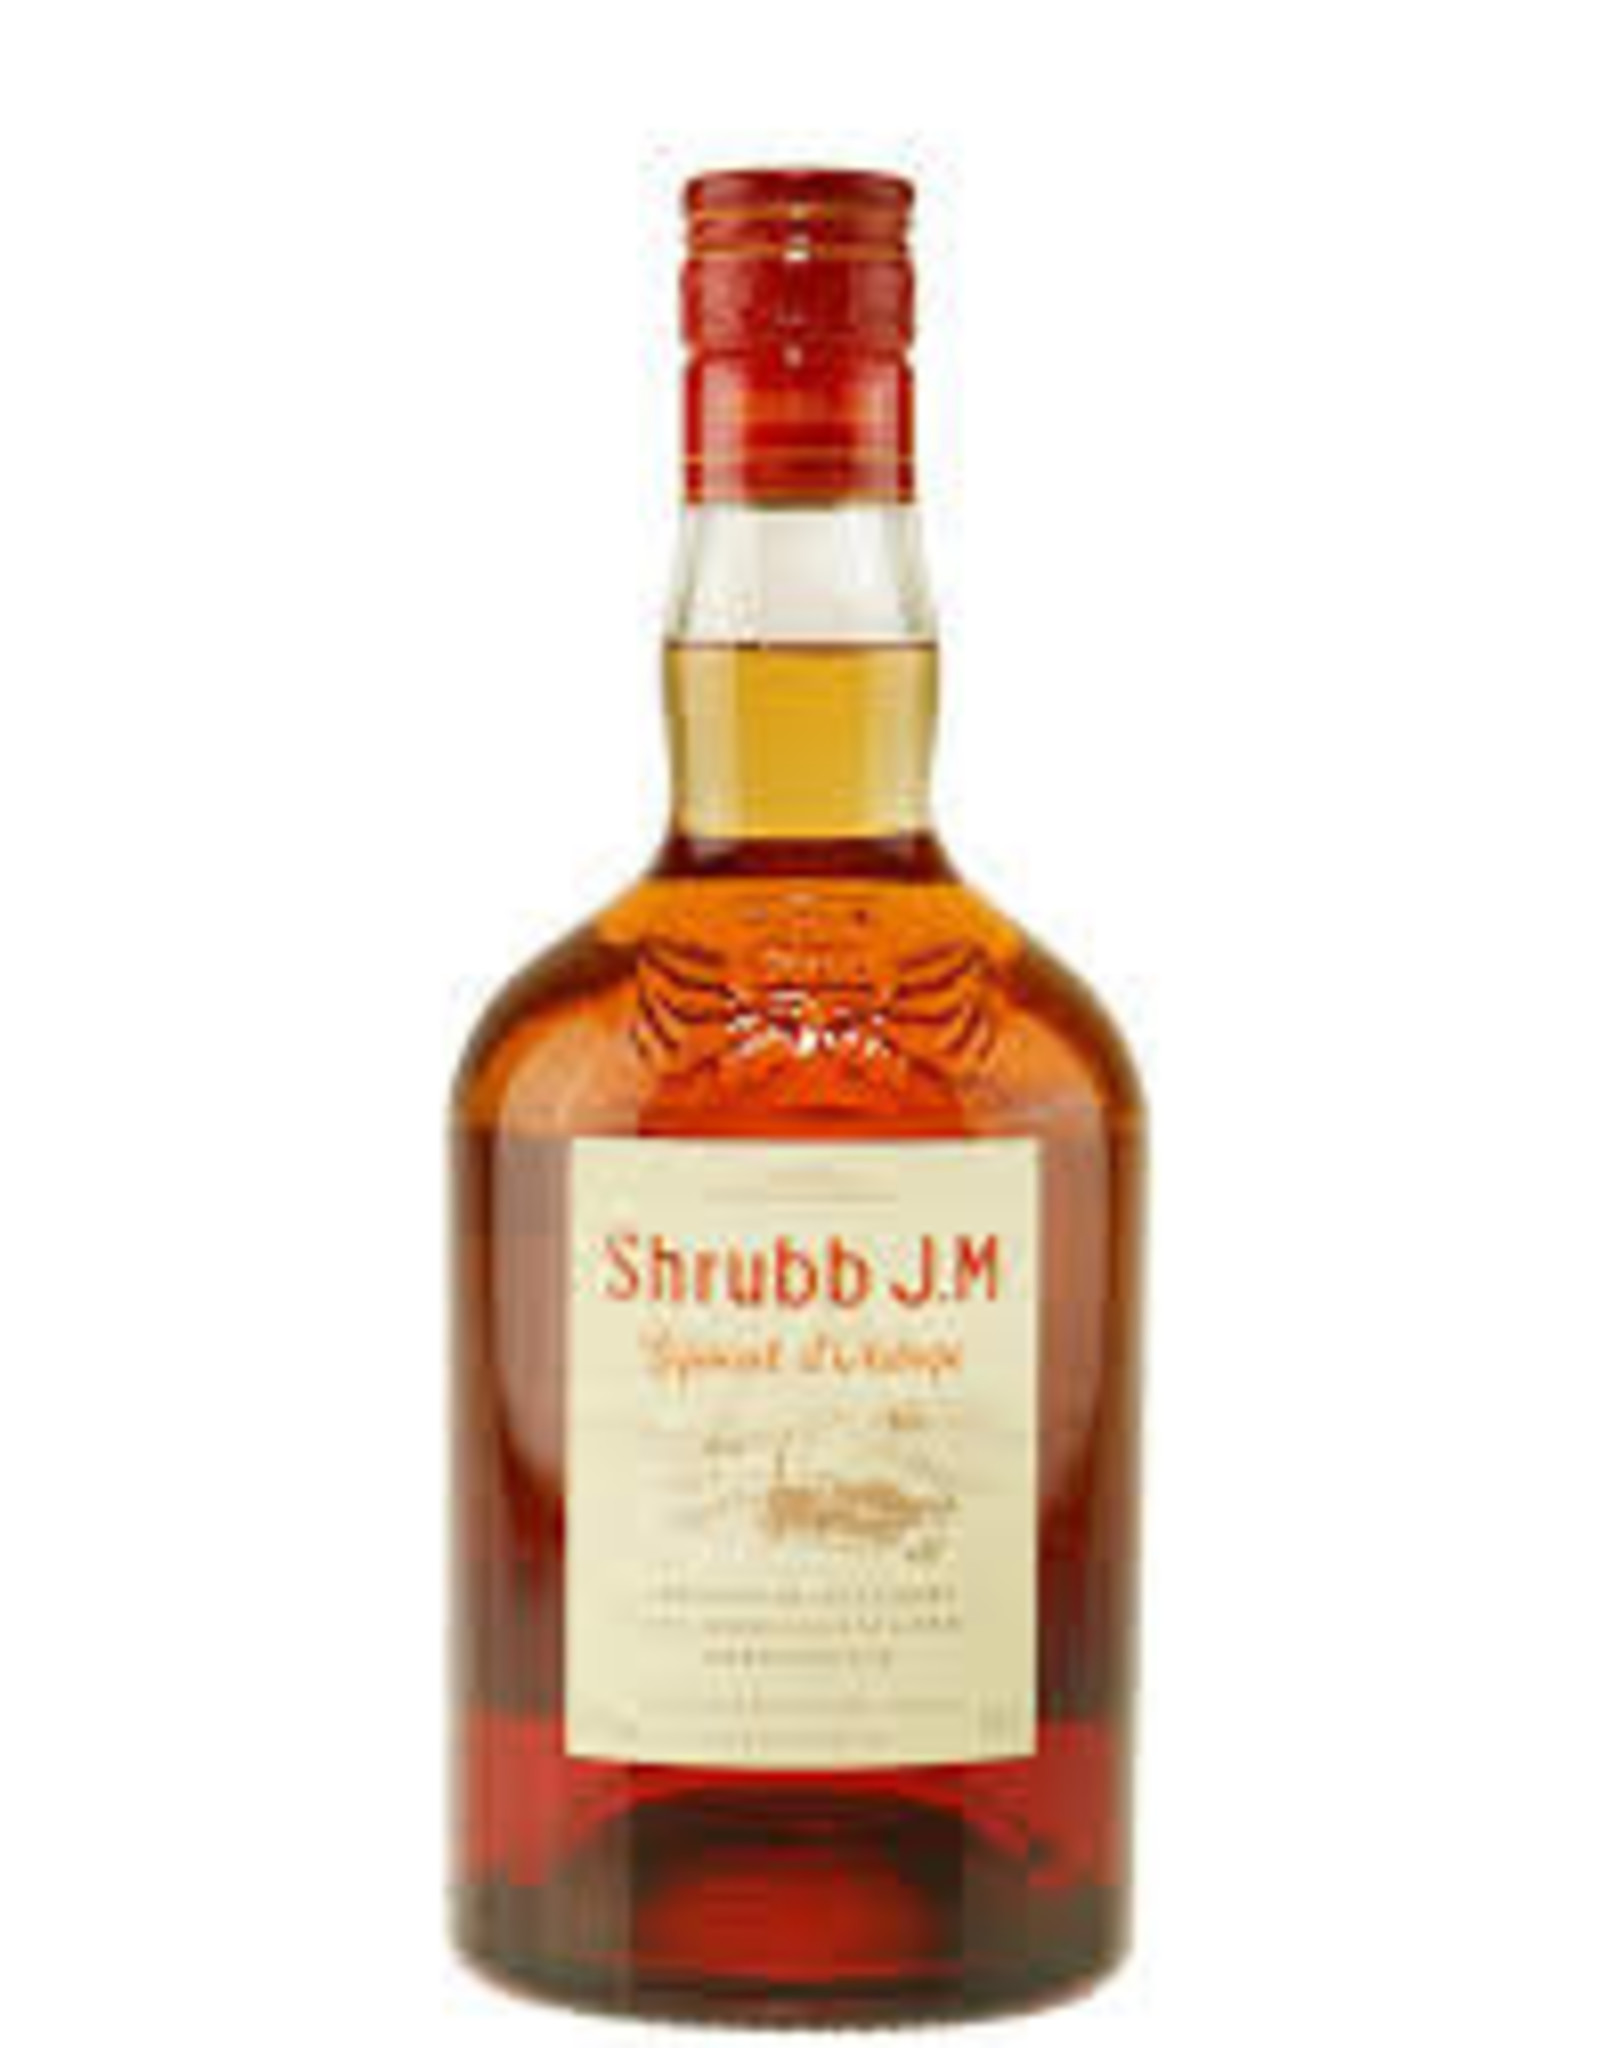 J.M Shrubb, Liqueur d'Orange, Martinique, Rhum J.M.